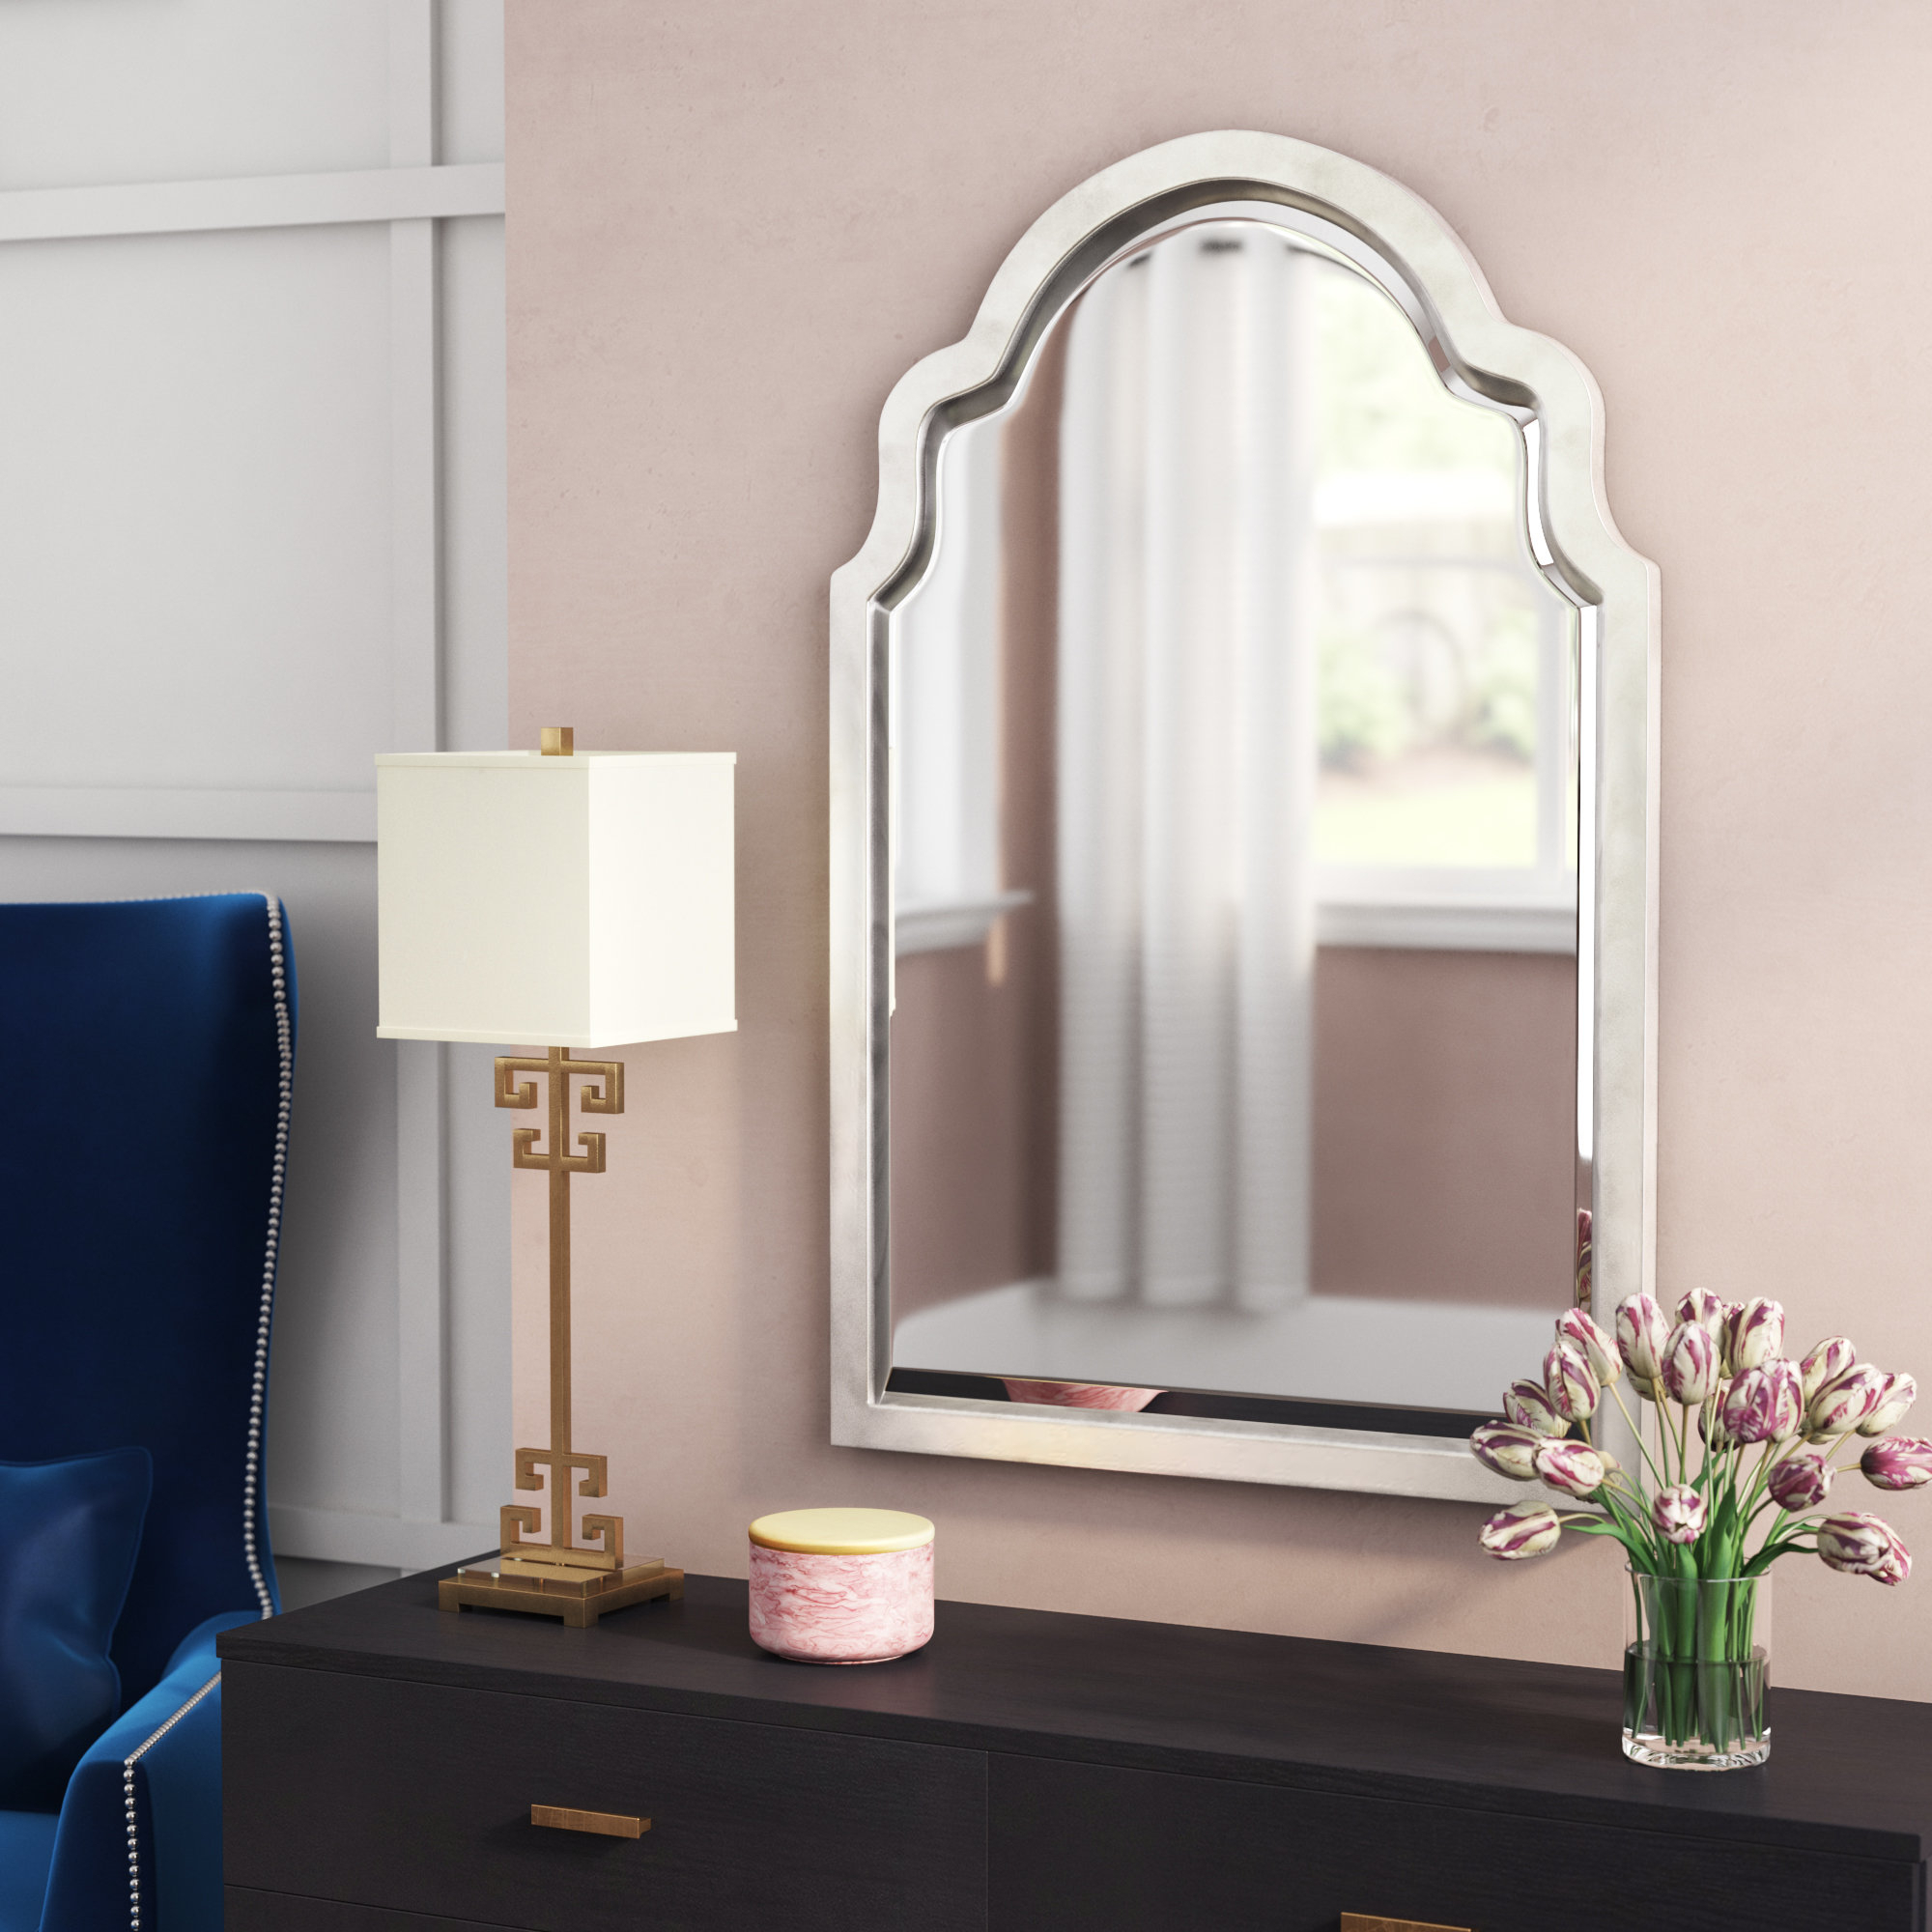 Clariandra Silver Arched Wall Mirror Intended For Current Fifi Contemporary Arch Wall Mirrors (View 4 of 20)